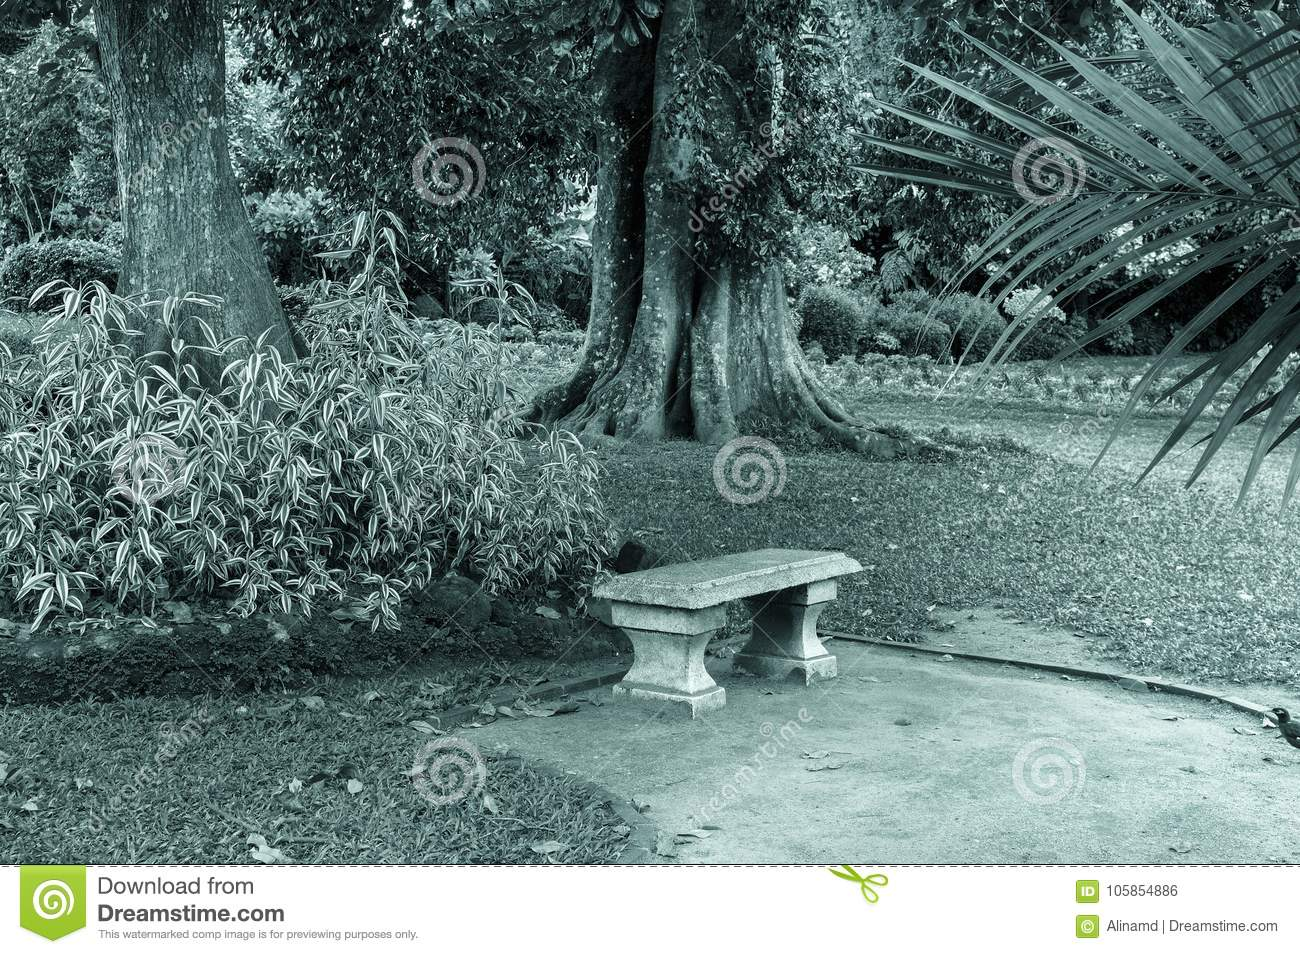 Bench Photo In Old Vintage Image Style Stock Photo Image Of